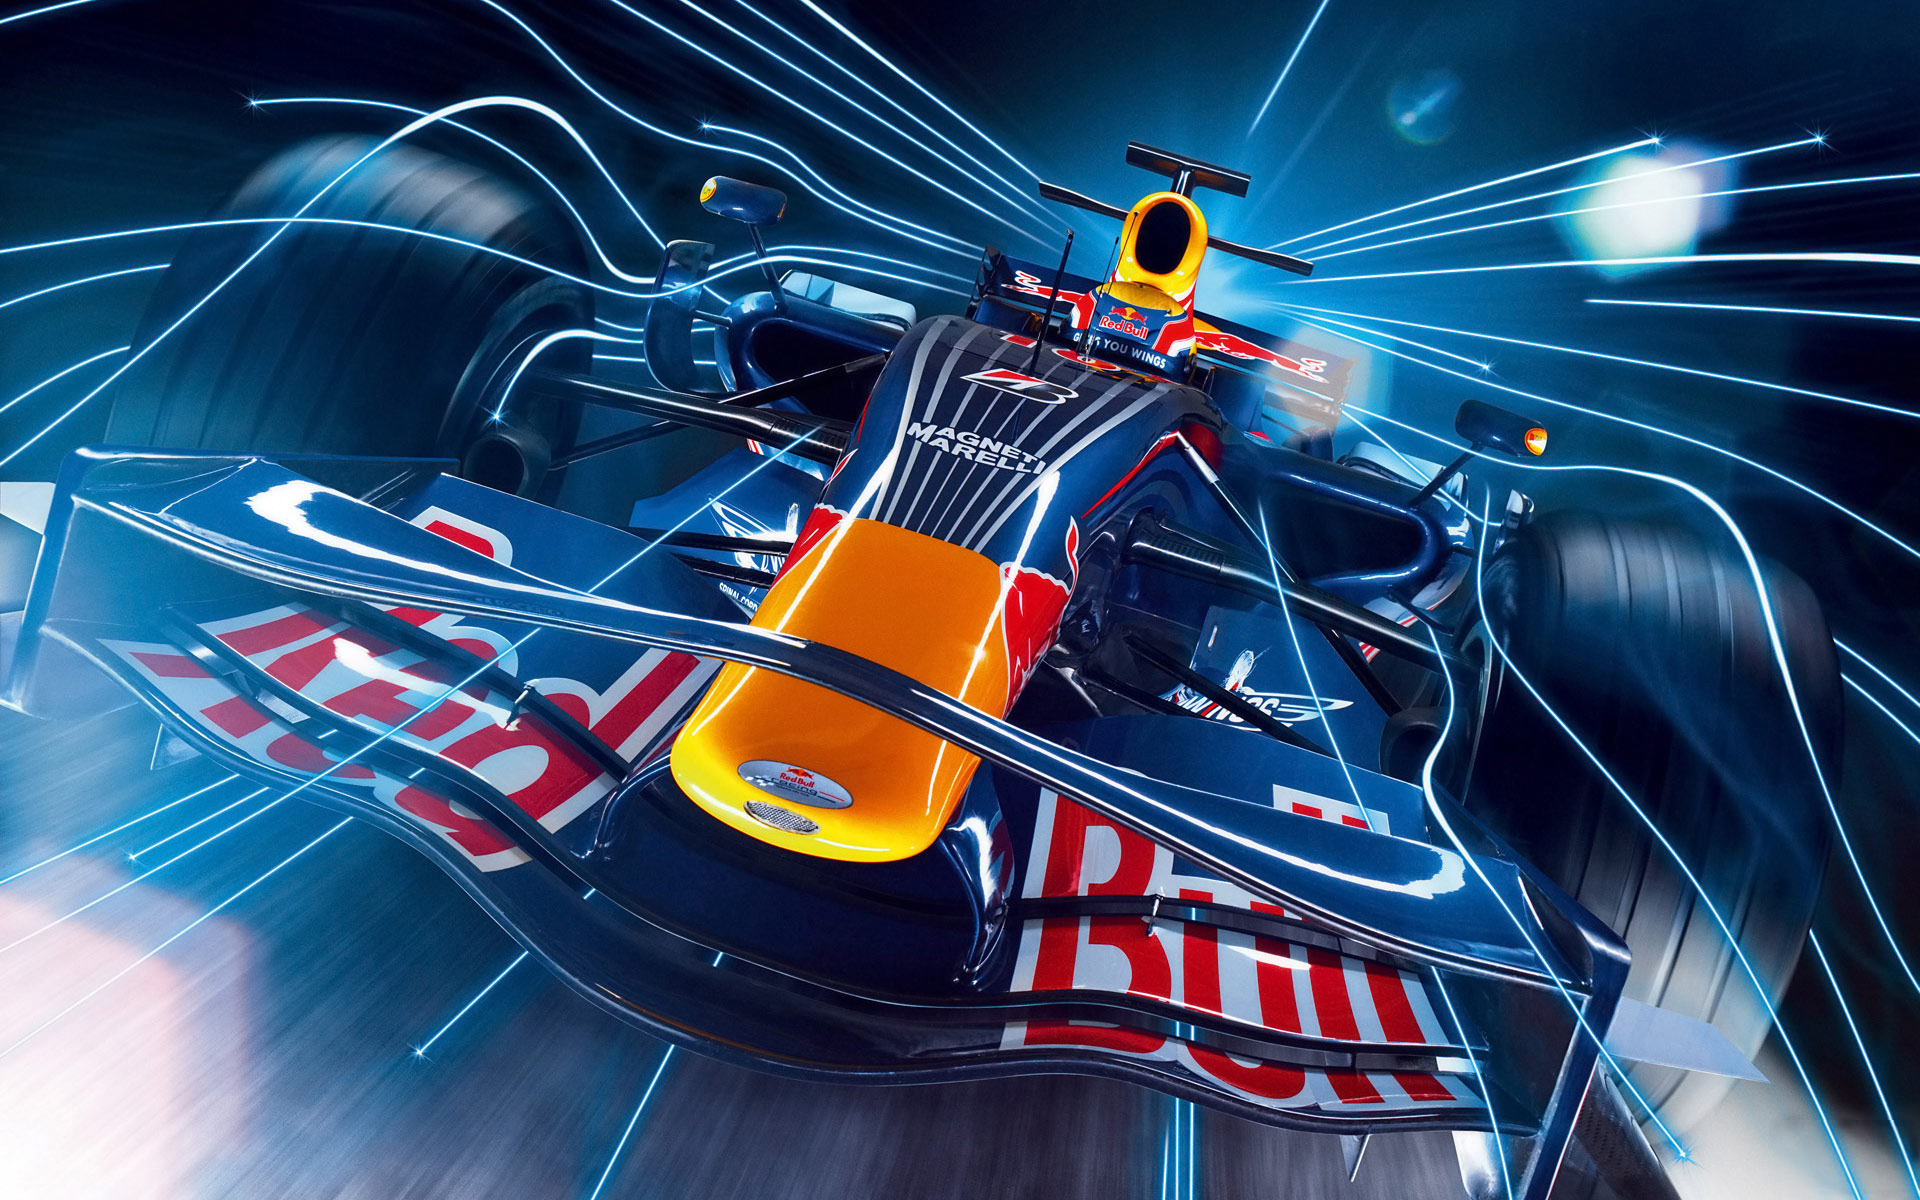 Red Bull F1 Wallpaper High Definition High Quality Widescreen